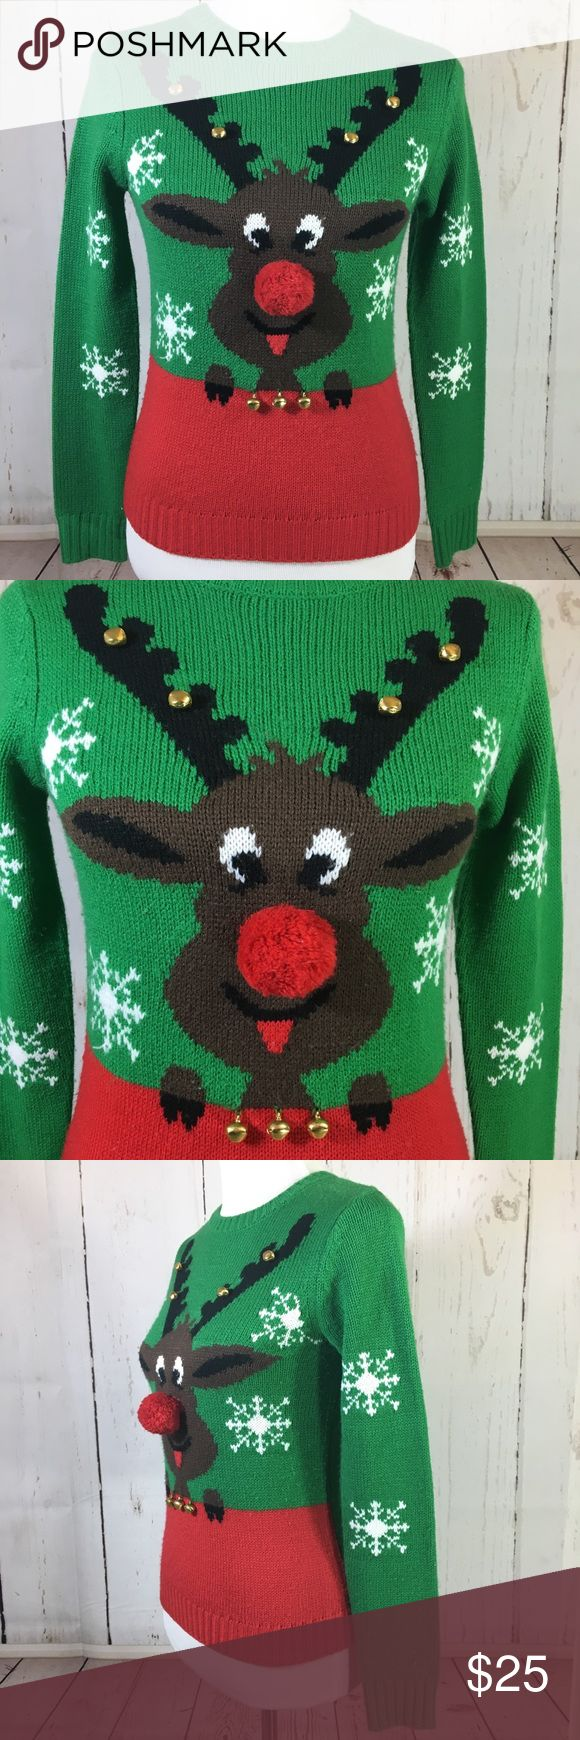 """Ugly Christmas Sweater Rudolph Red Nose Bells Ugly Christmas Sweater Rudolph Reindeer Pom Pom Red Nose Jingle Bells Small Shown on a medium size mannequin  Approximate measurements:  Chest 16"""" Shoulders 14"""" Waist 15"""" Length 22"""" Arm length 23"""" Forever 21 Sweaters Crew & Scoop Necks"""